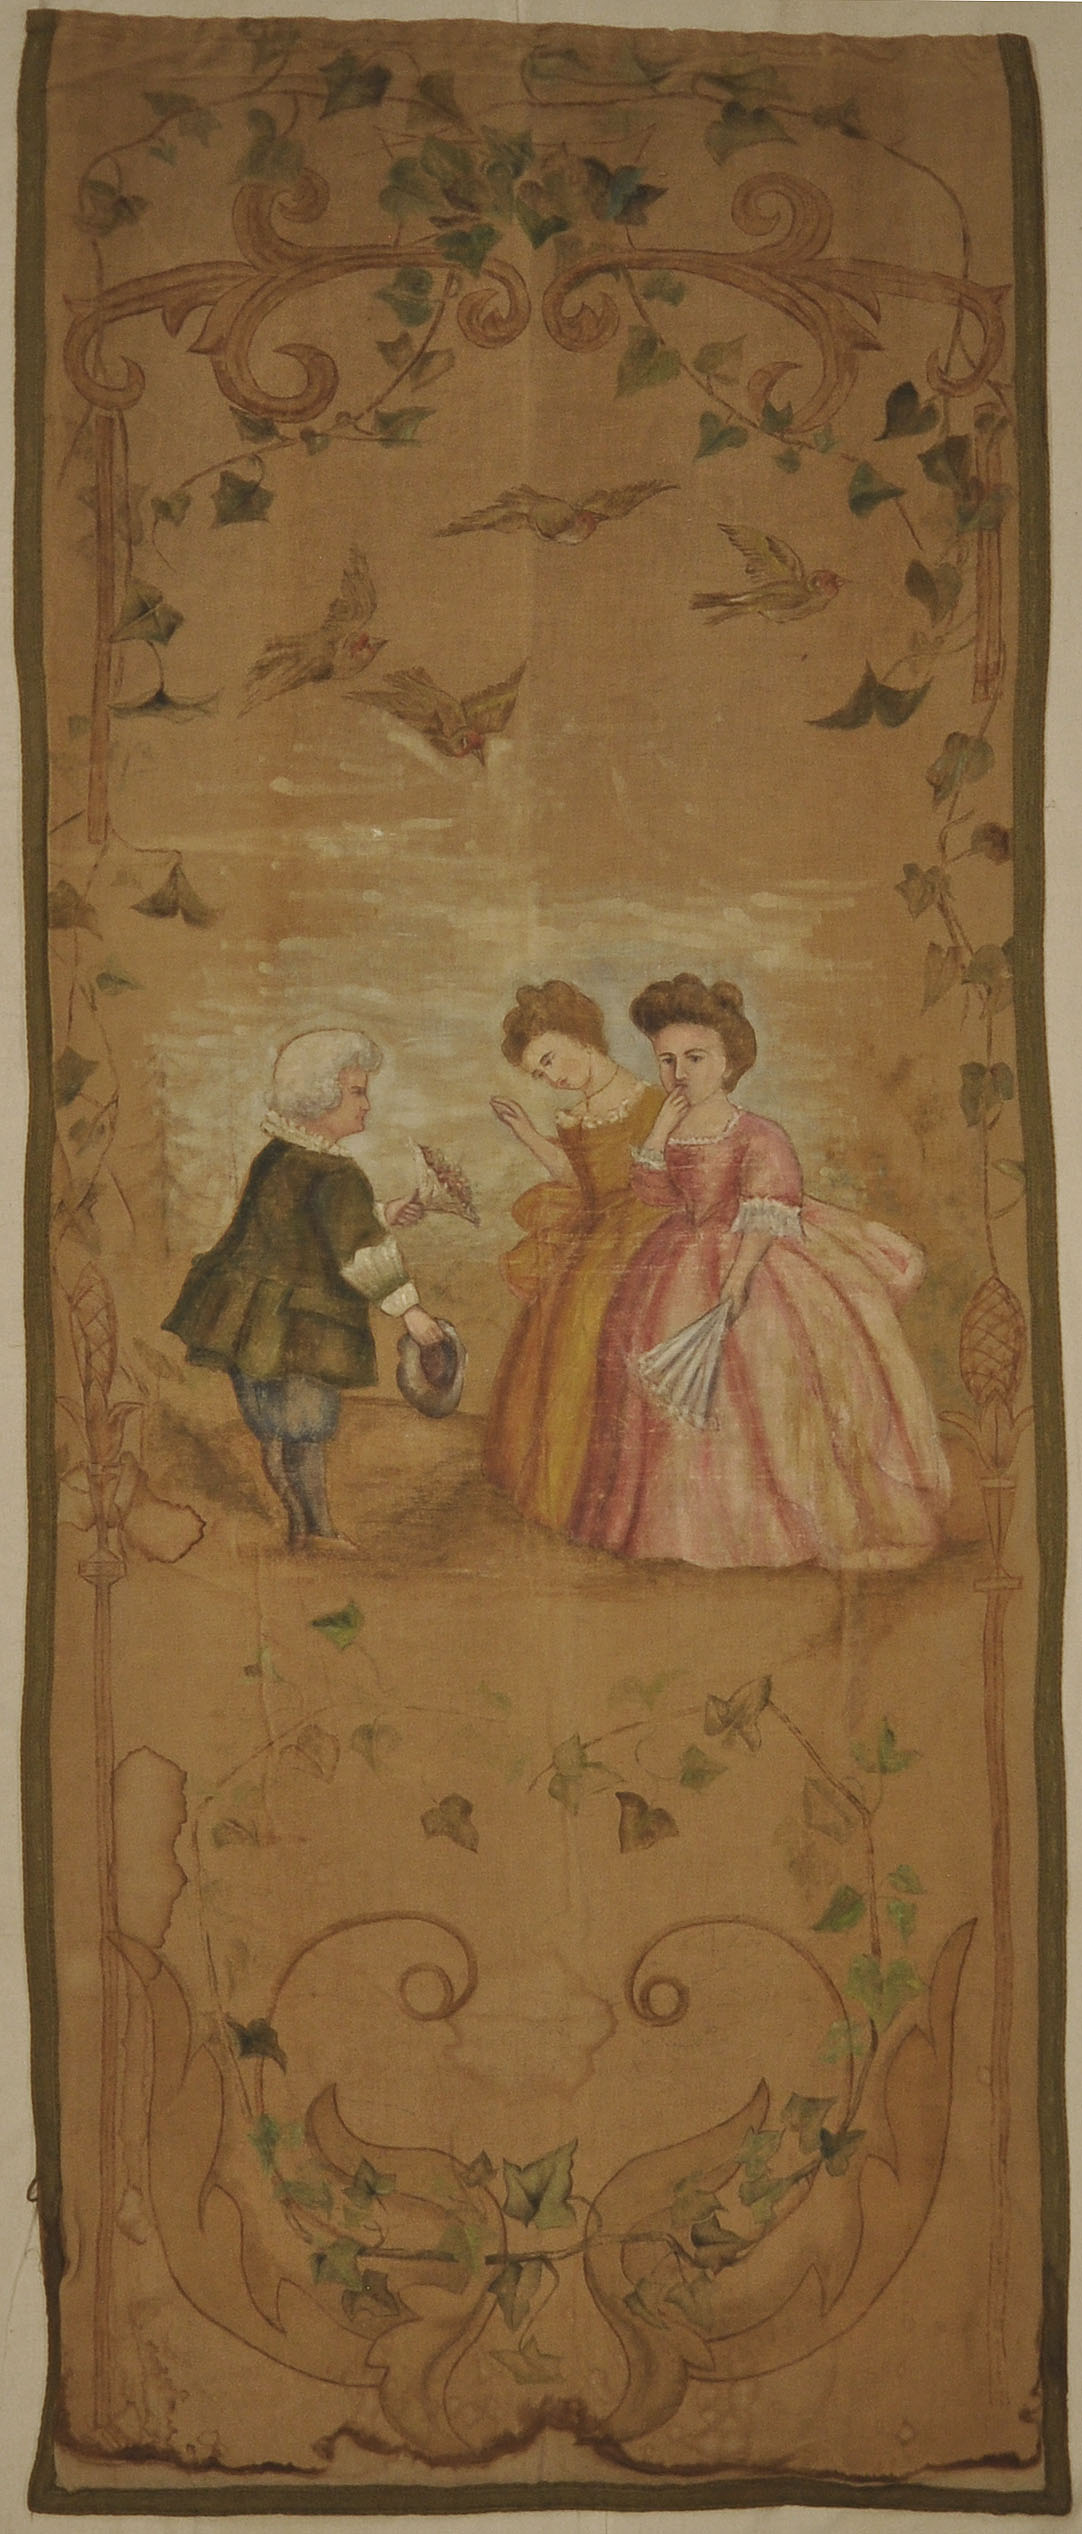 18th Century French Tapestry I santa barbara design center-7